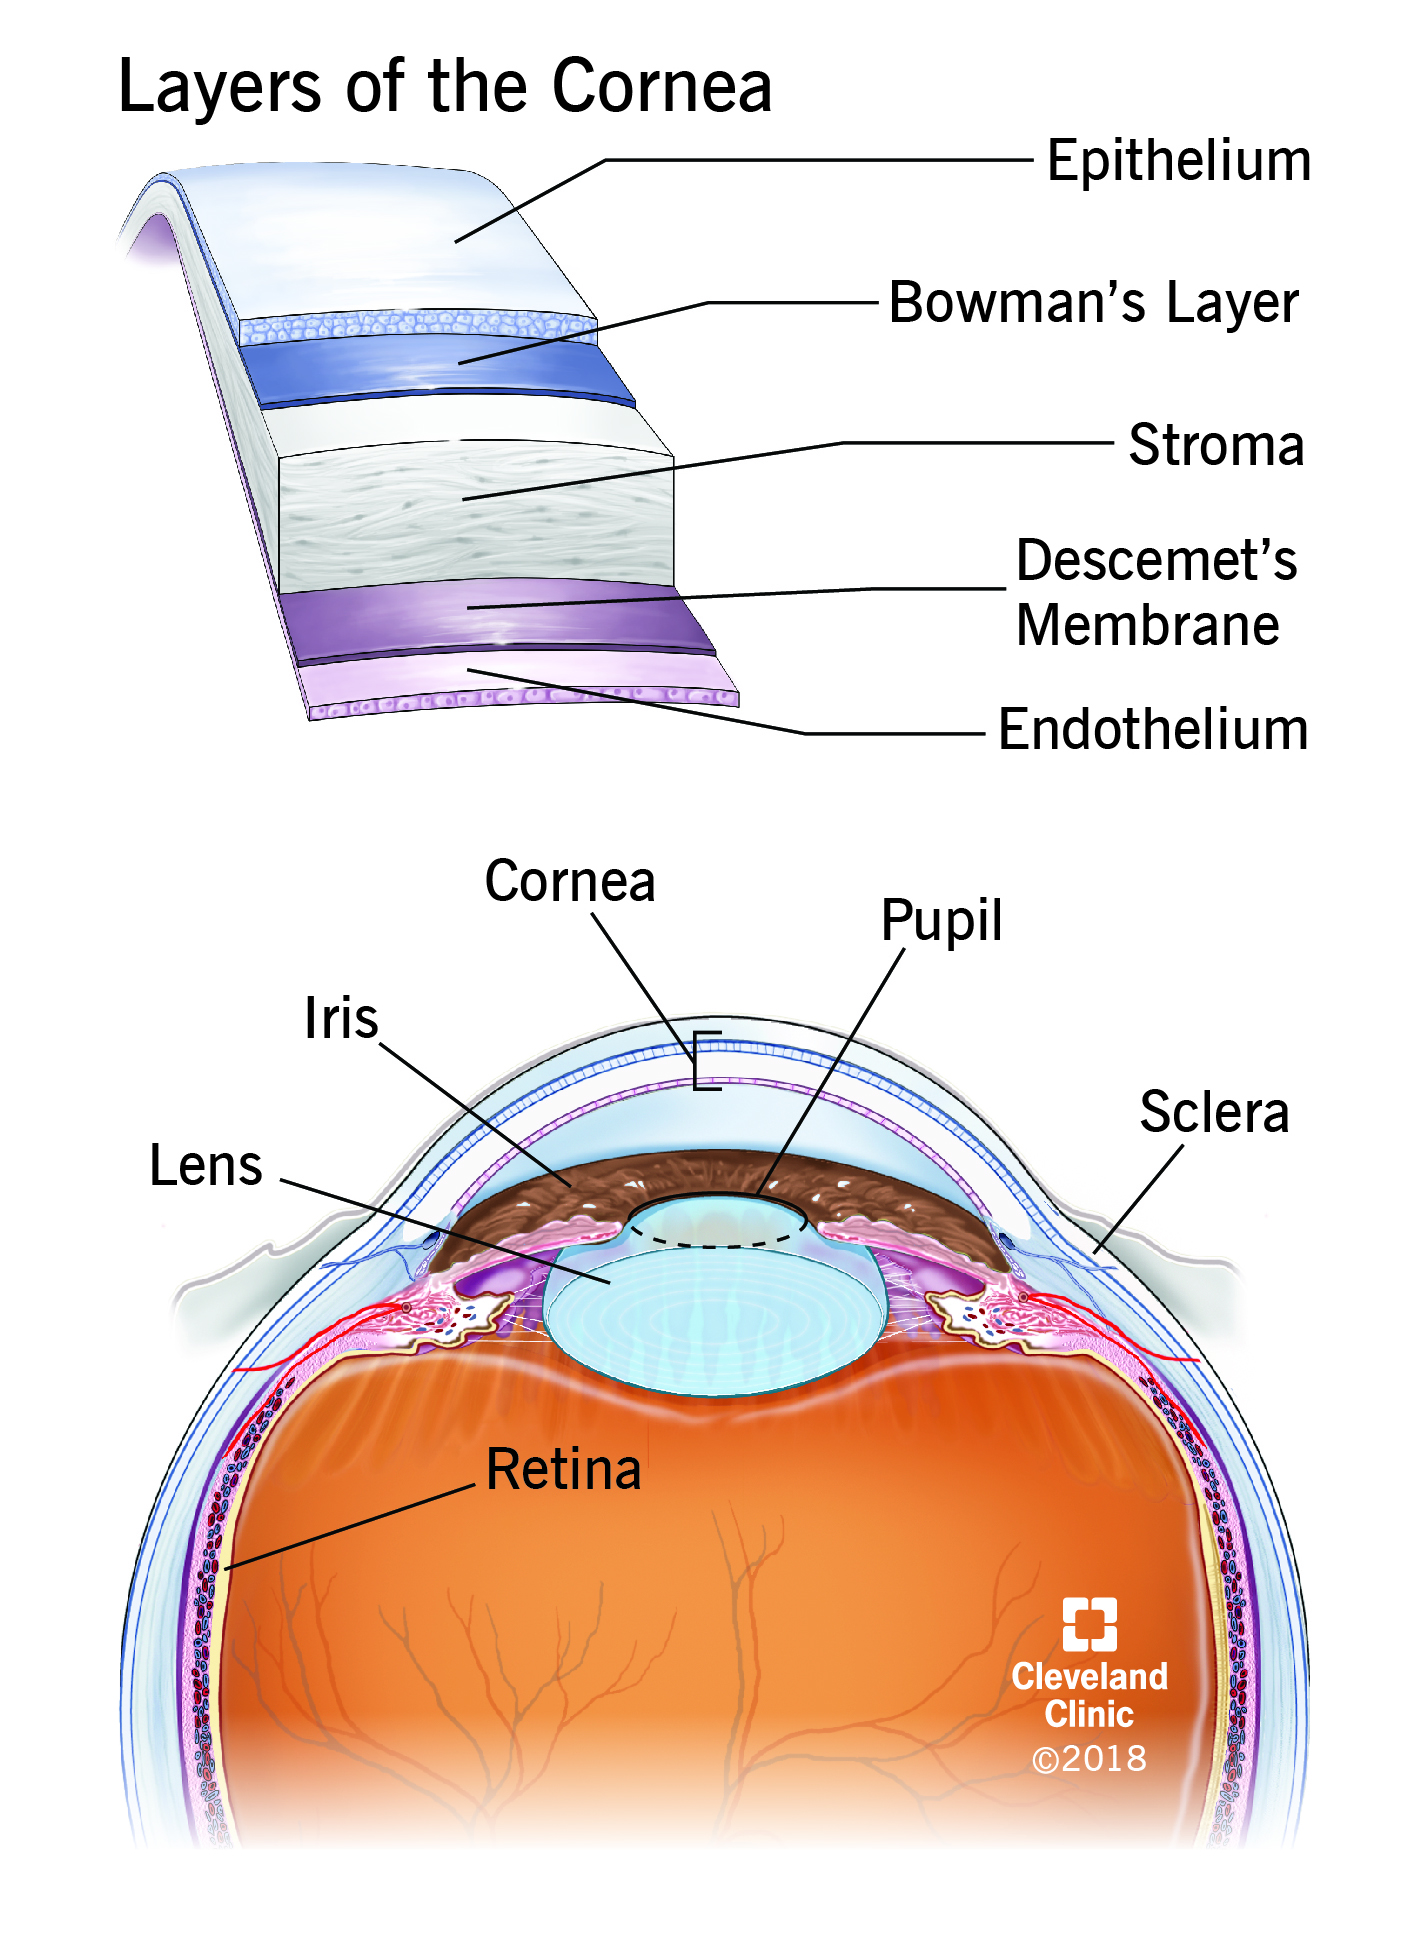 Anatomy of the eye and layers of the cornea | Cleveland Clinic